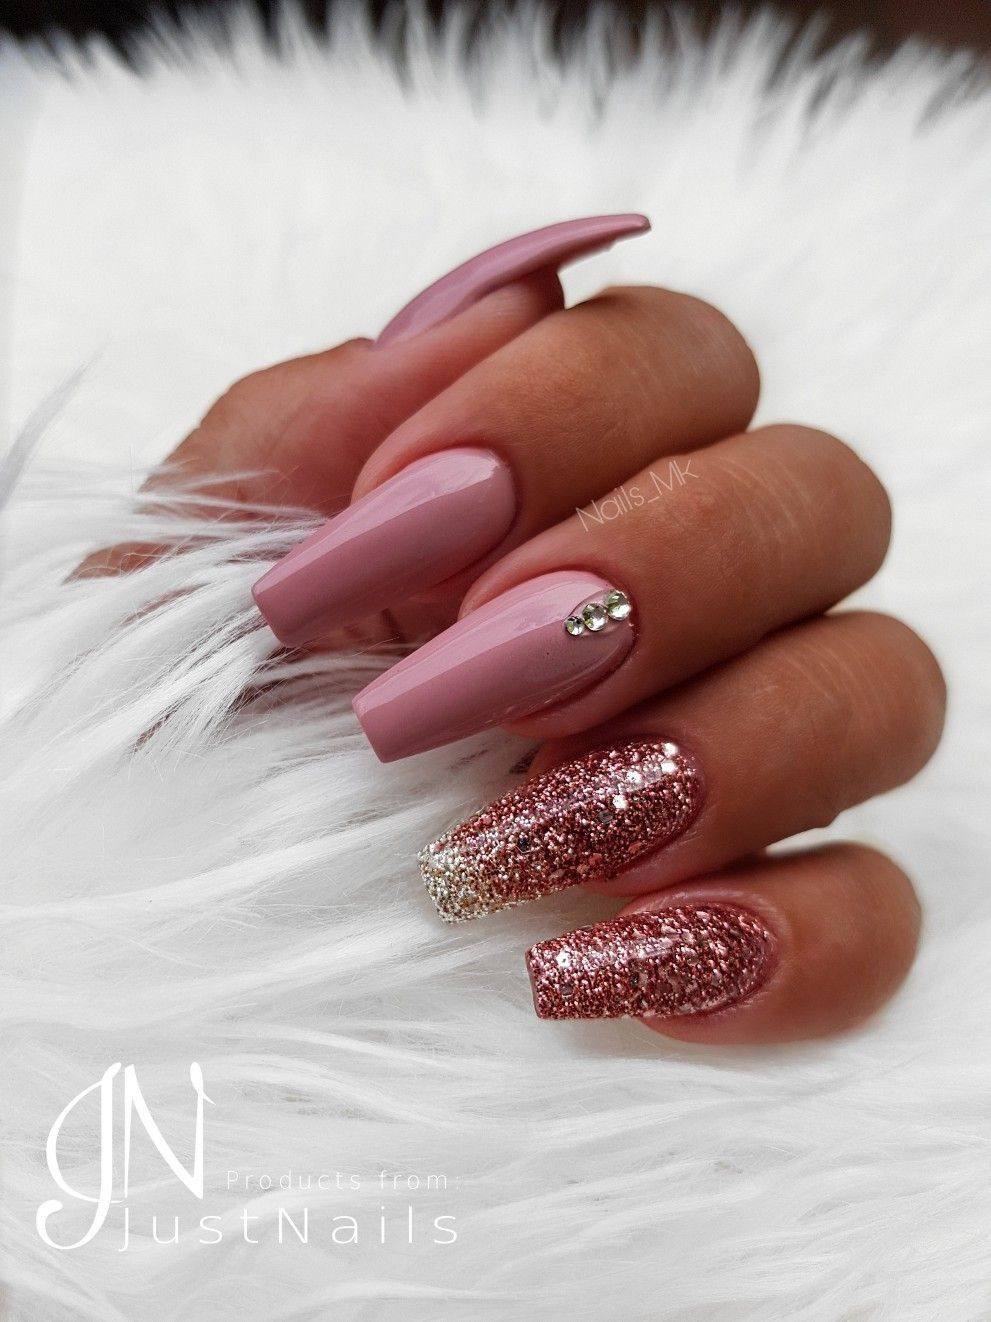 Diy Acrylic Nails Would Look Great In Both A Almond Or Coffin Shape Cute Design For Summer Long Kylie Jenner Na Rose Gold Nails Gold Nails Gold Acrylic Nails